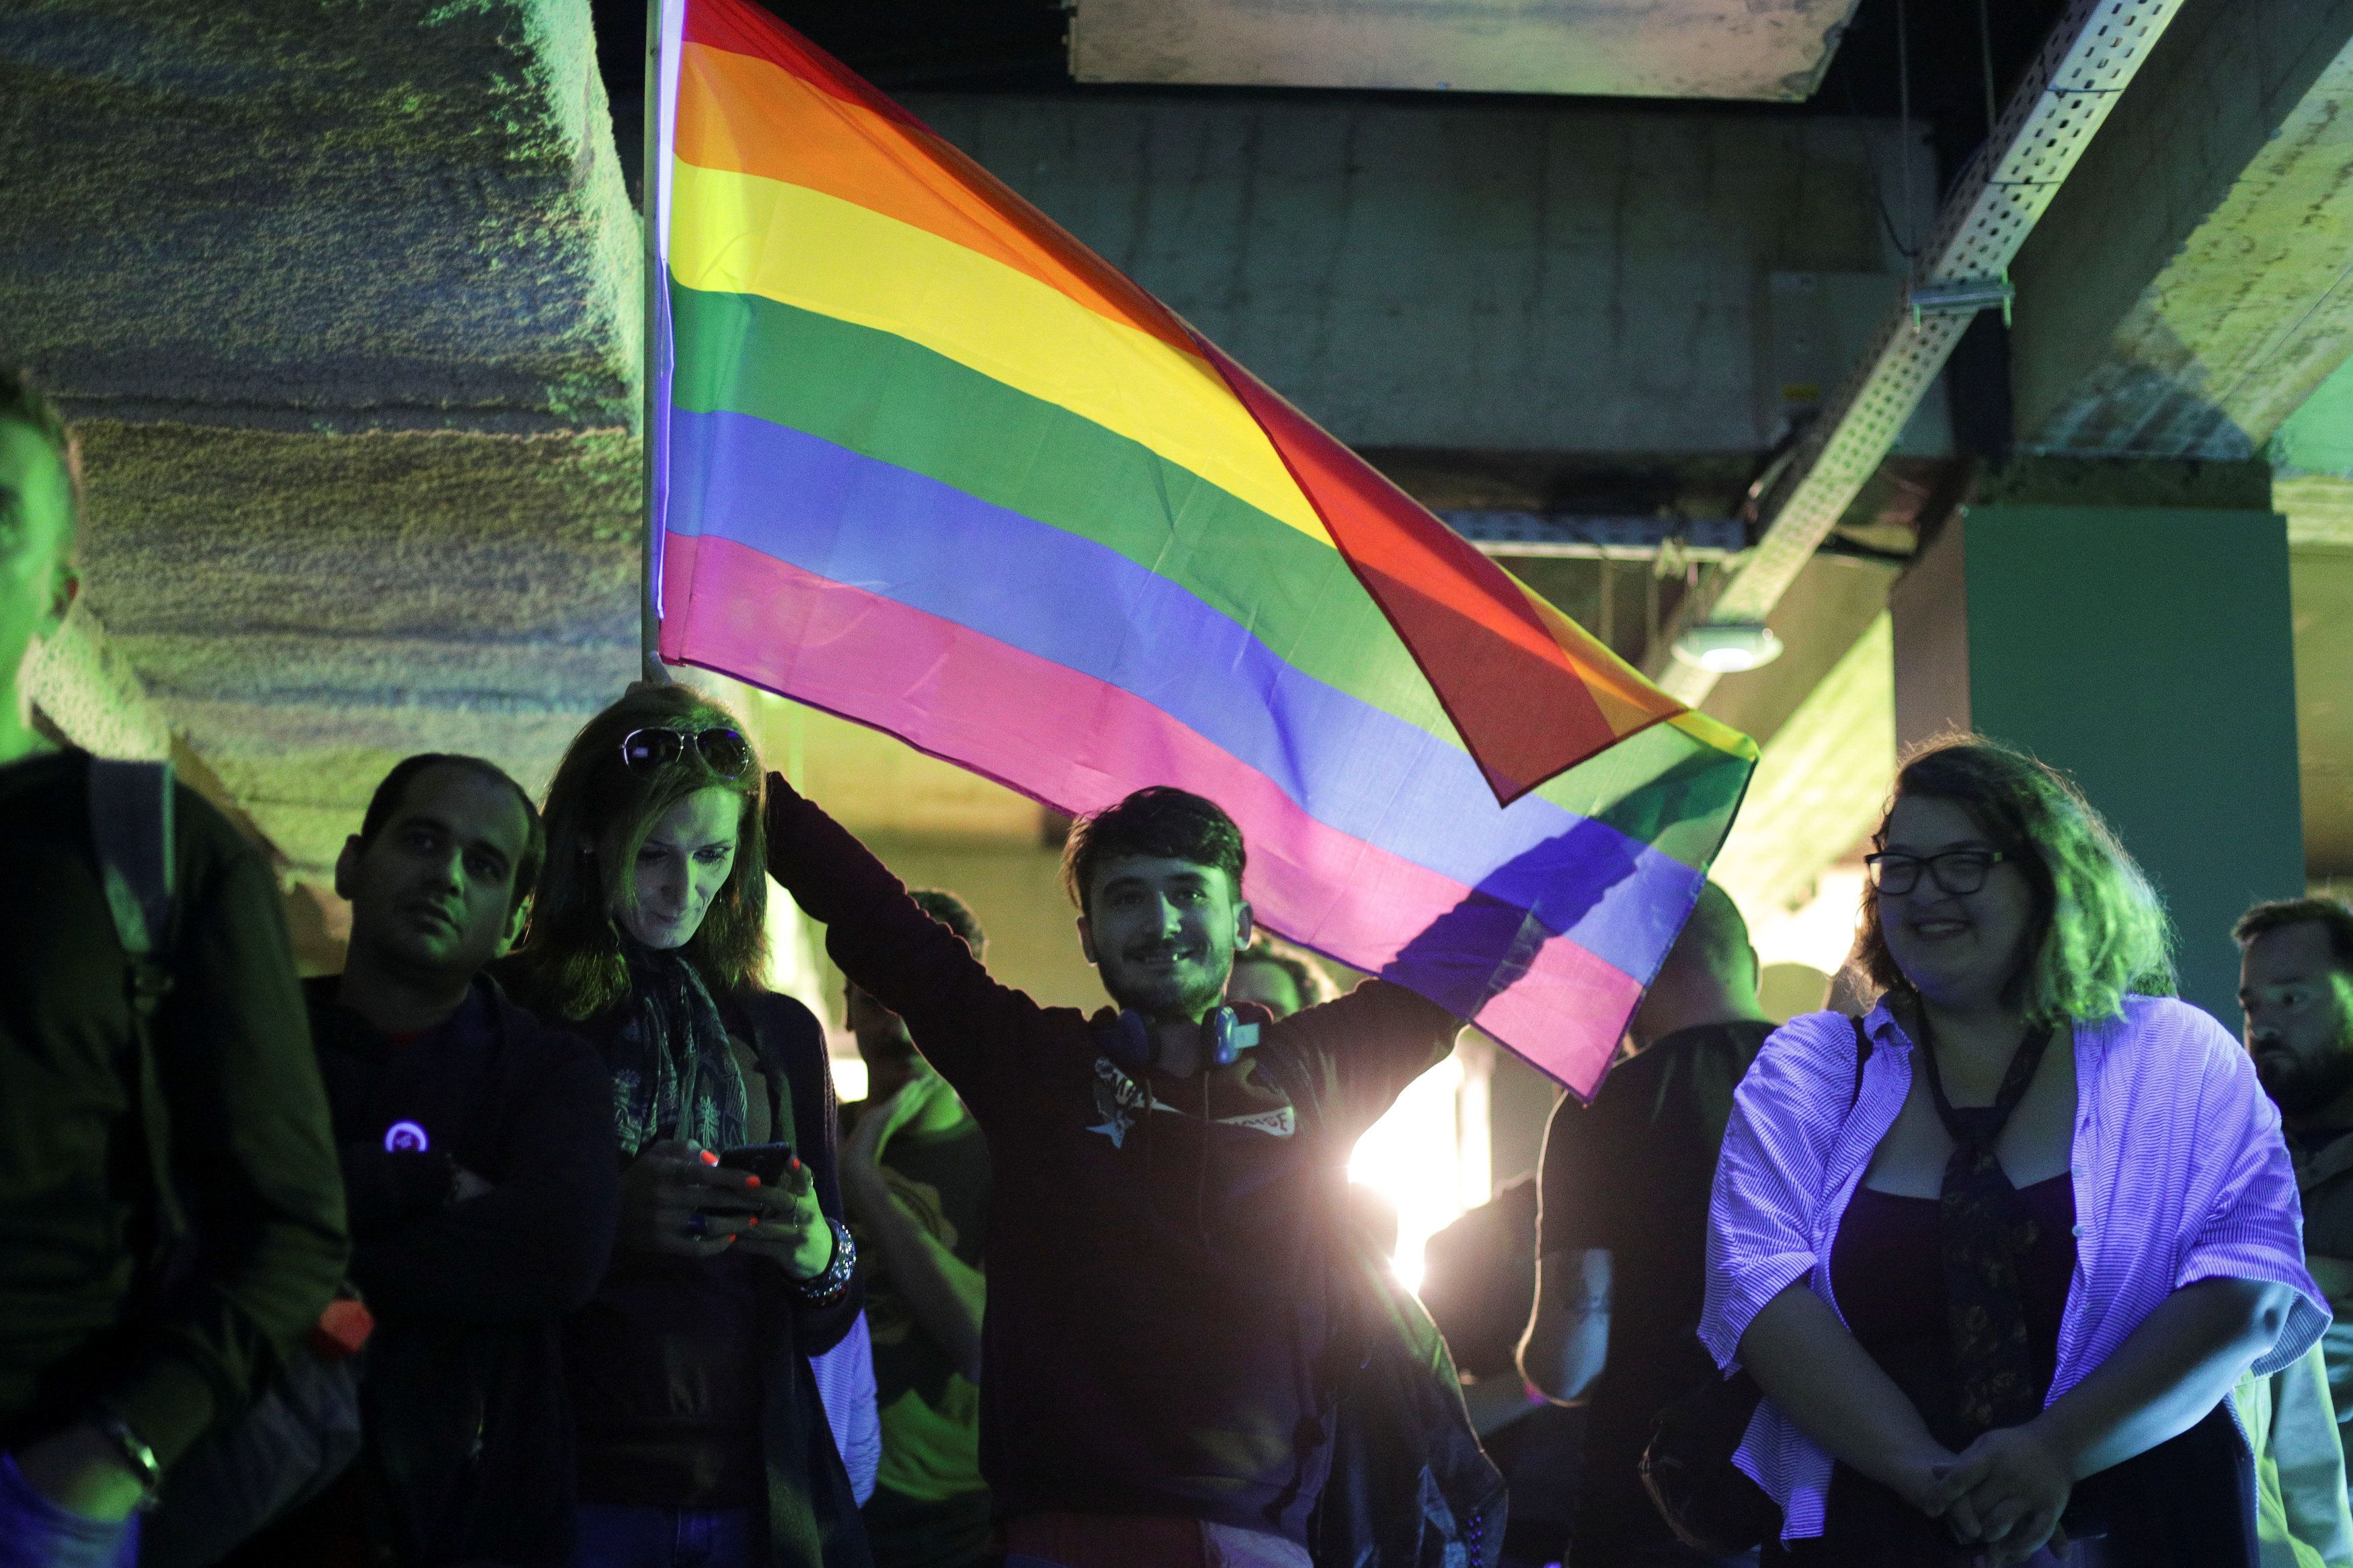 "LGBT activists react during an event organised by the LGBT rights group ""Mozaiq"" in downtown Bucharest, Romania, October 7, 2018. Inquam Photos/Octav Ganea via REUTERS ATTENTION EDITORS - THIS IMAGE WAS PROVIDED BY A THIRD PARTY. ROMANIA OUT."